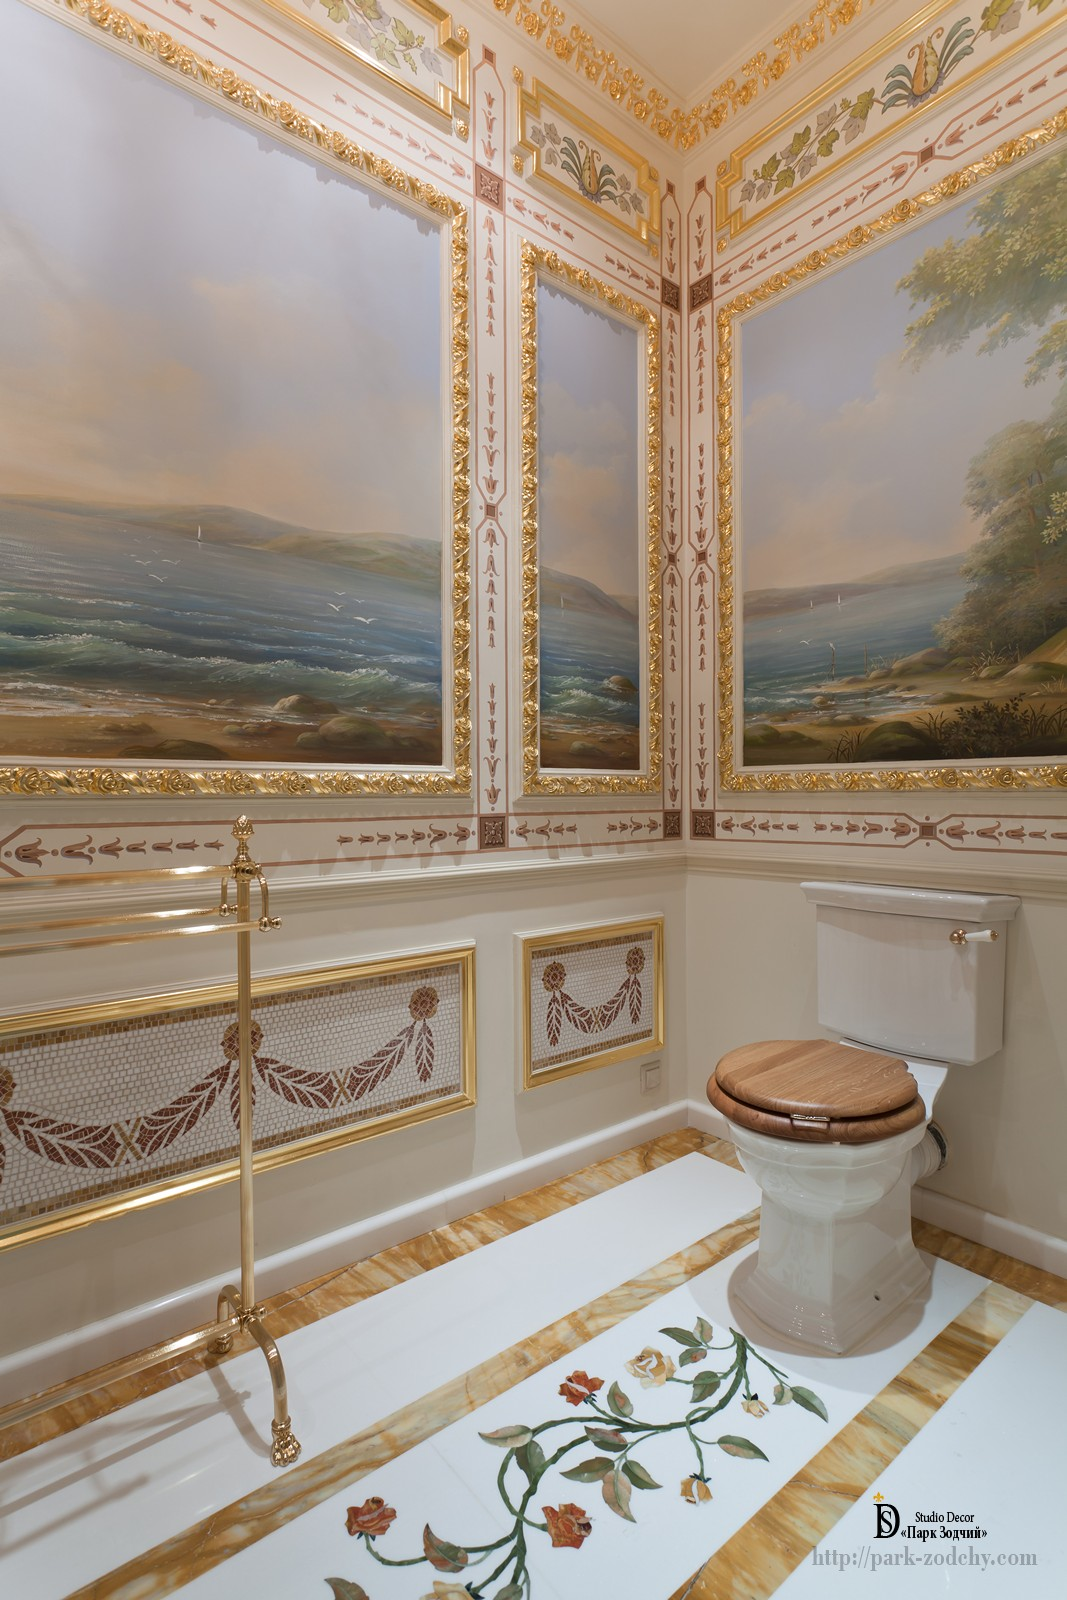 Bathroom with bidet, painting and gilding stucco